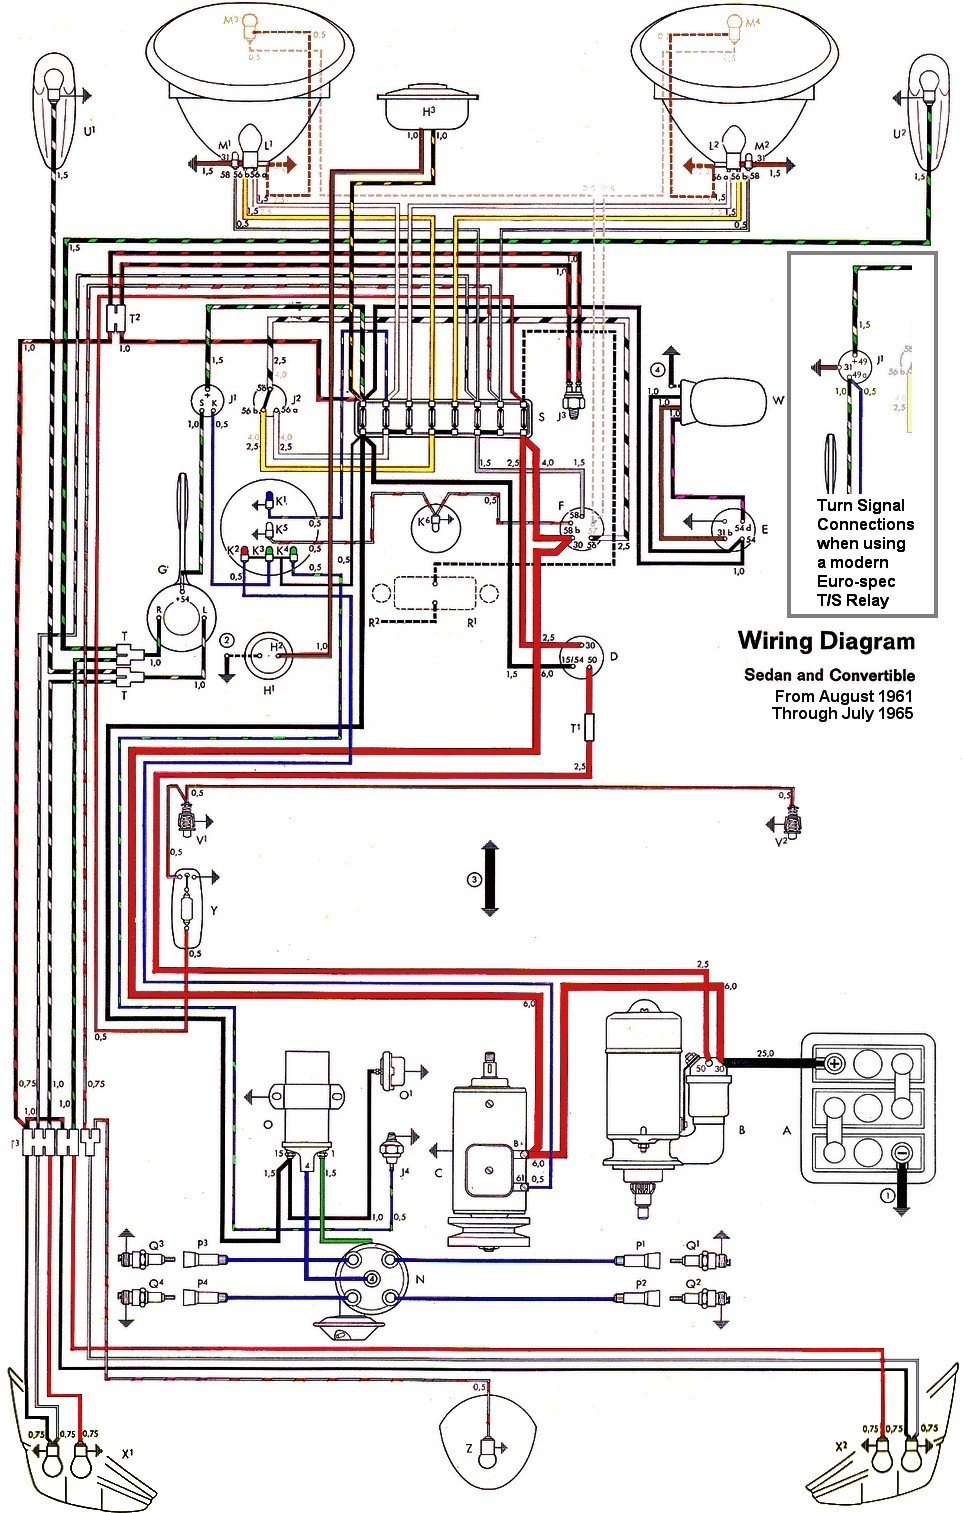 bug_62 65withinset thesamba com type 1 wiring diagrams vw bug wiring diagram at soozxer.org